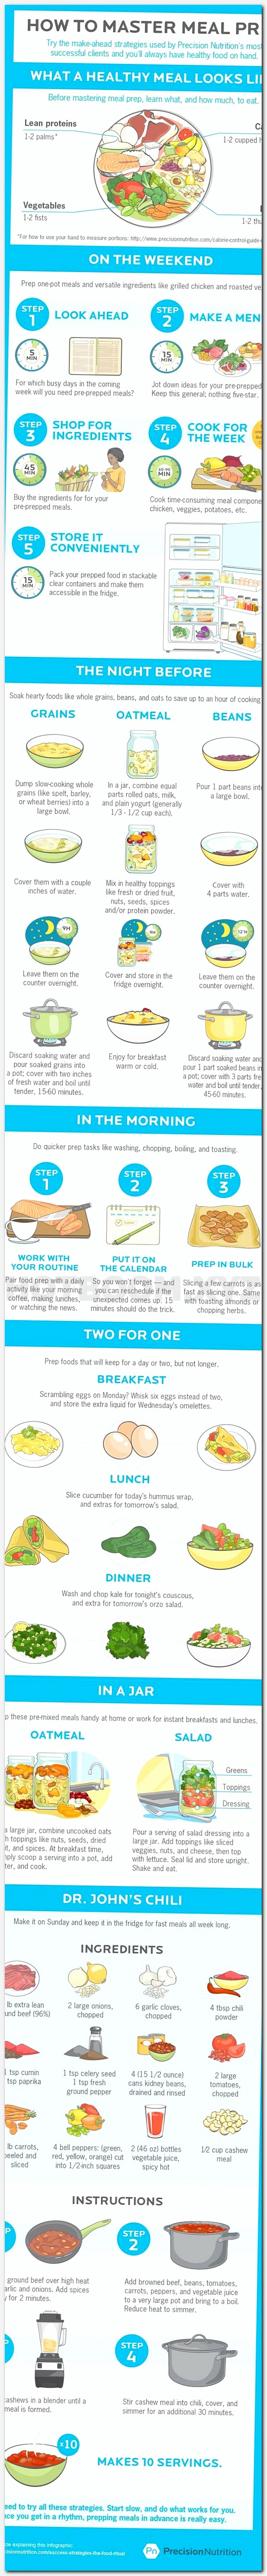 Free meal plan for weight loss app image 3